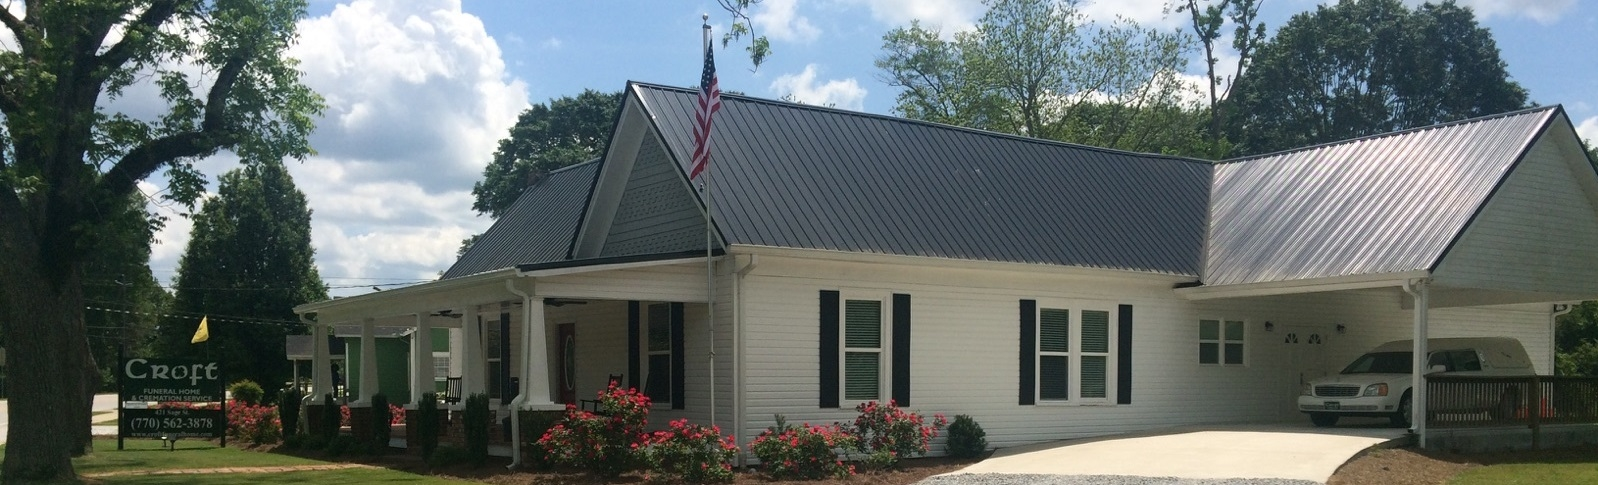 Hutcheson-Croft Funeral Home and Cremation Service image 1